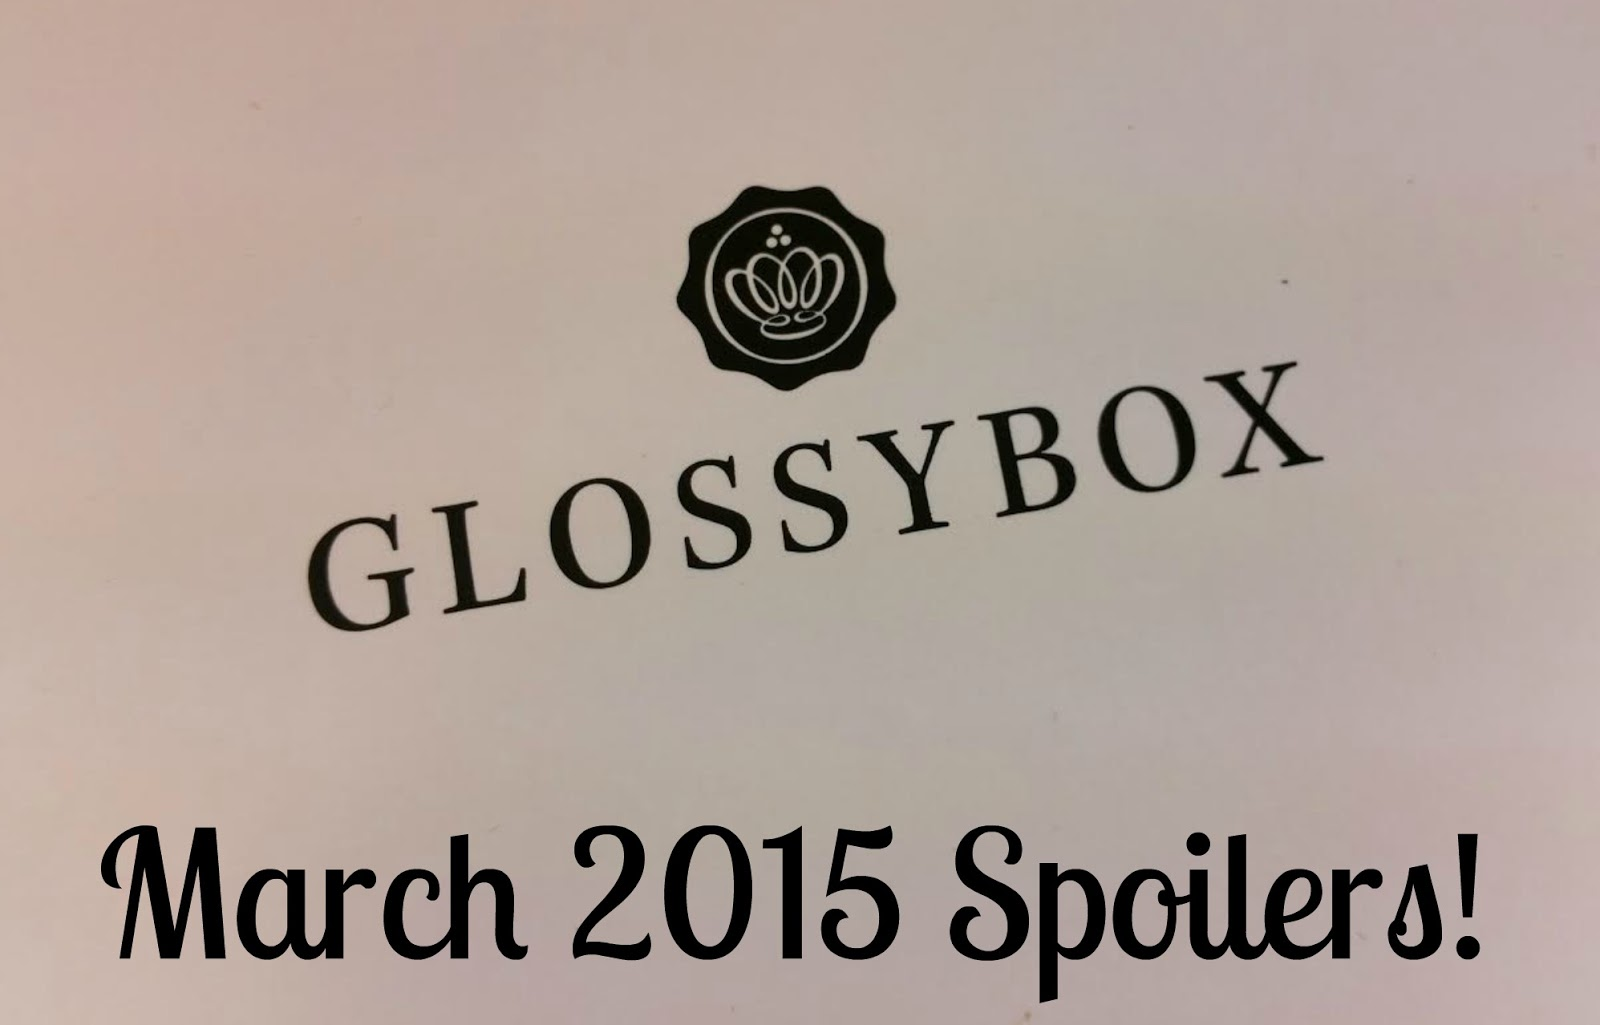 march 2015 glossybox spoilers